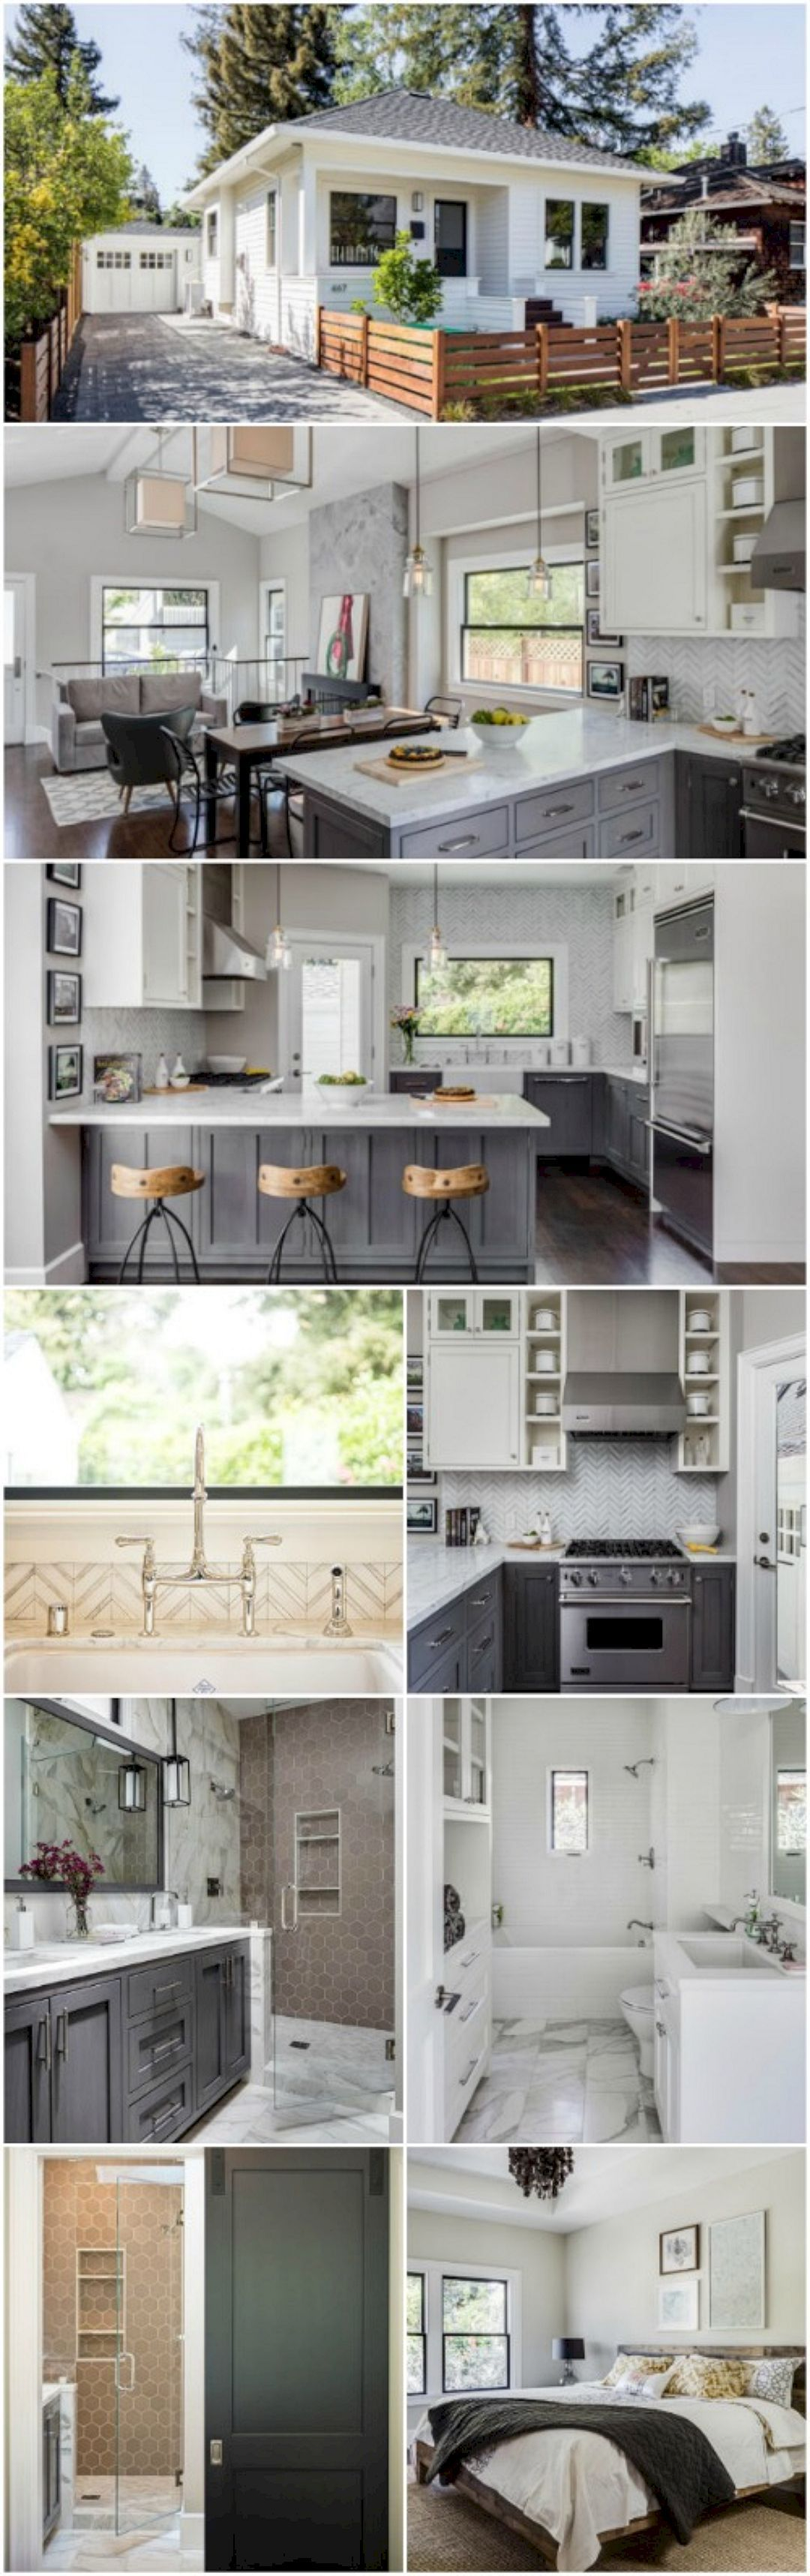 Marvelous and impressive tiny houses design that maximize style and function no 24 #housedesign